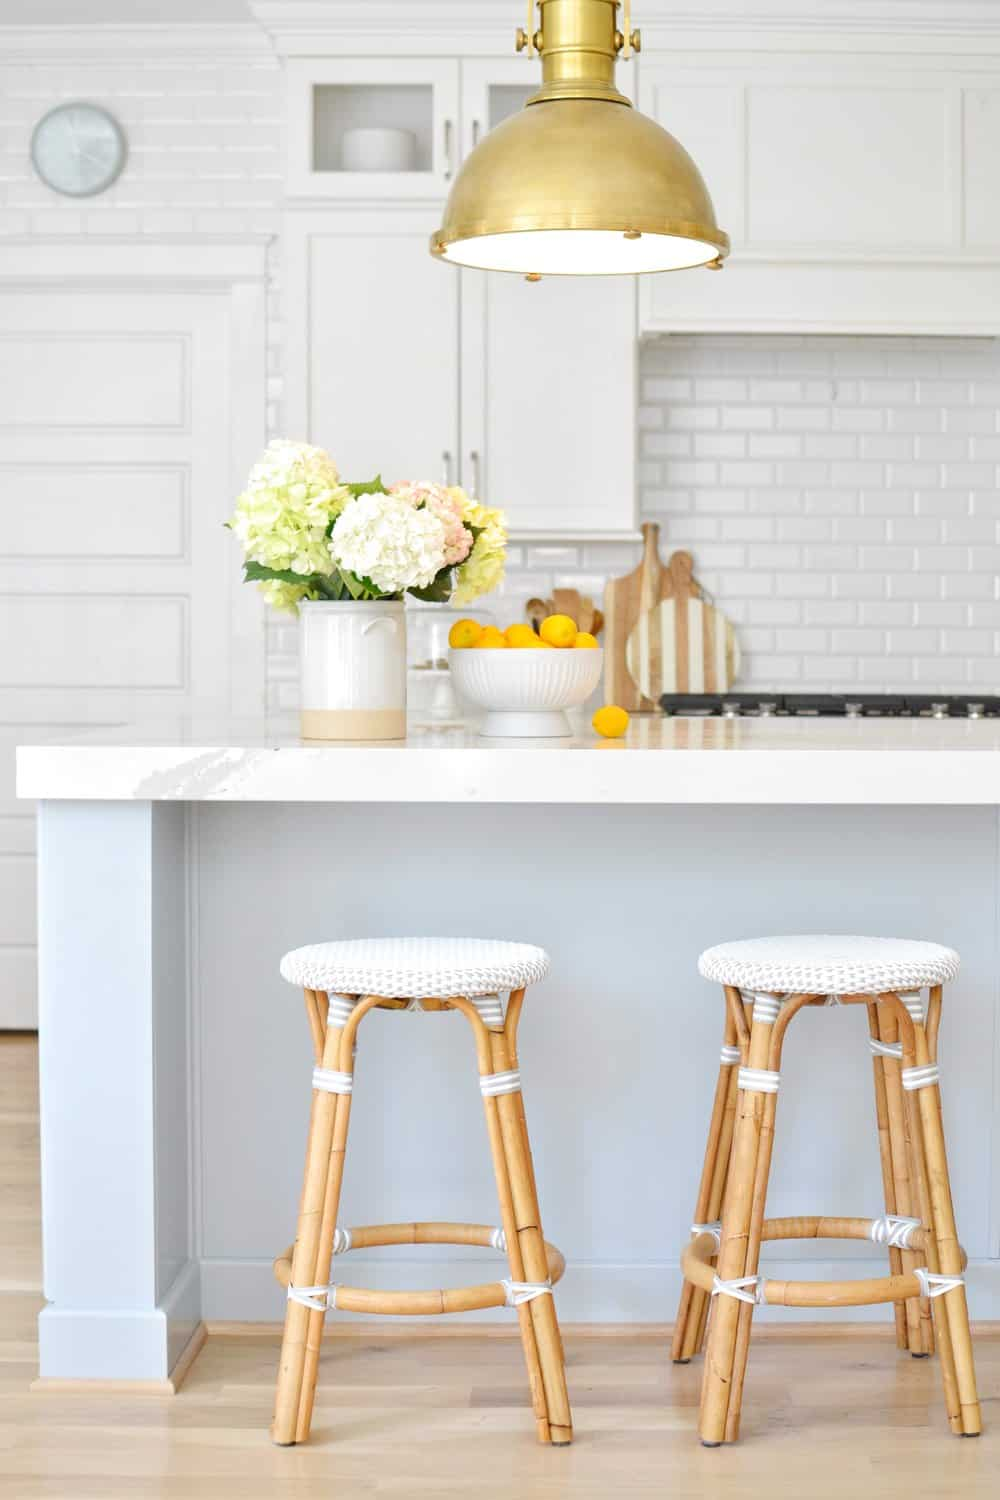 stools and kitchen pendant light in a coastal kitchen design